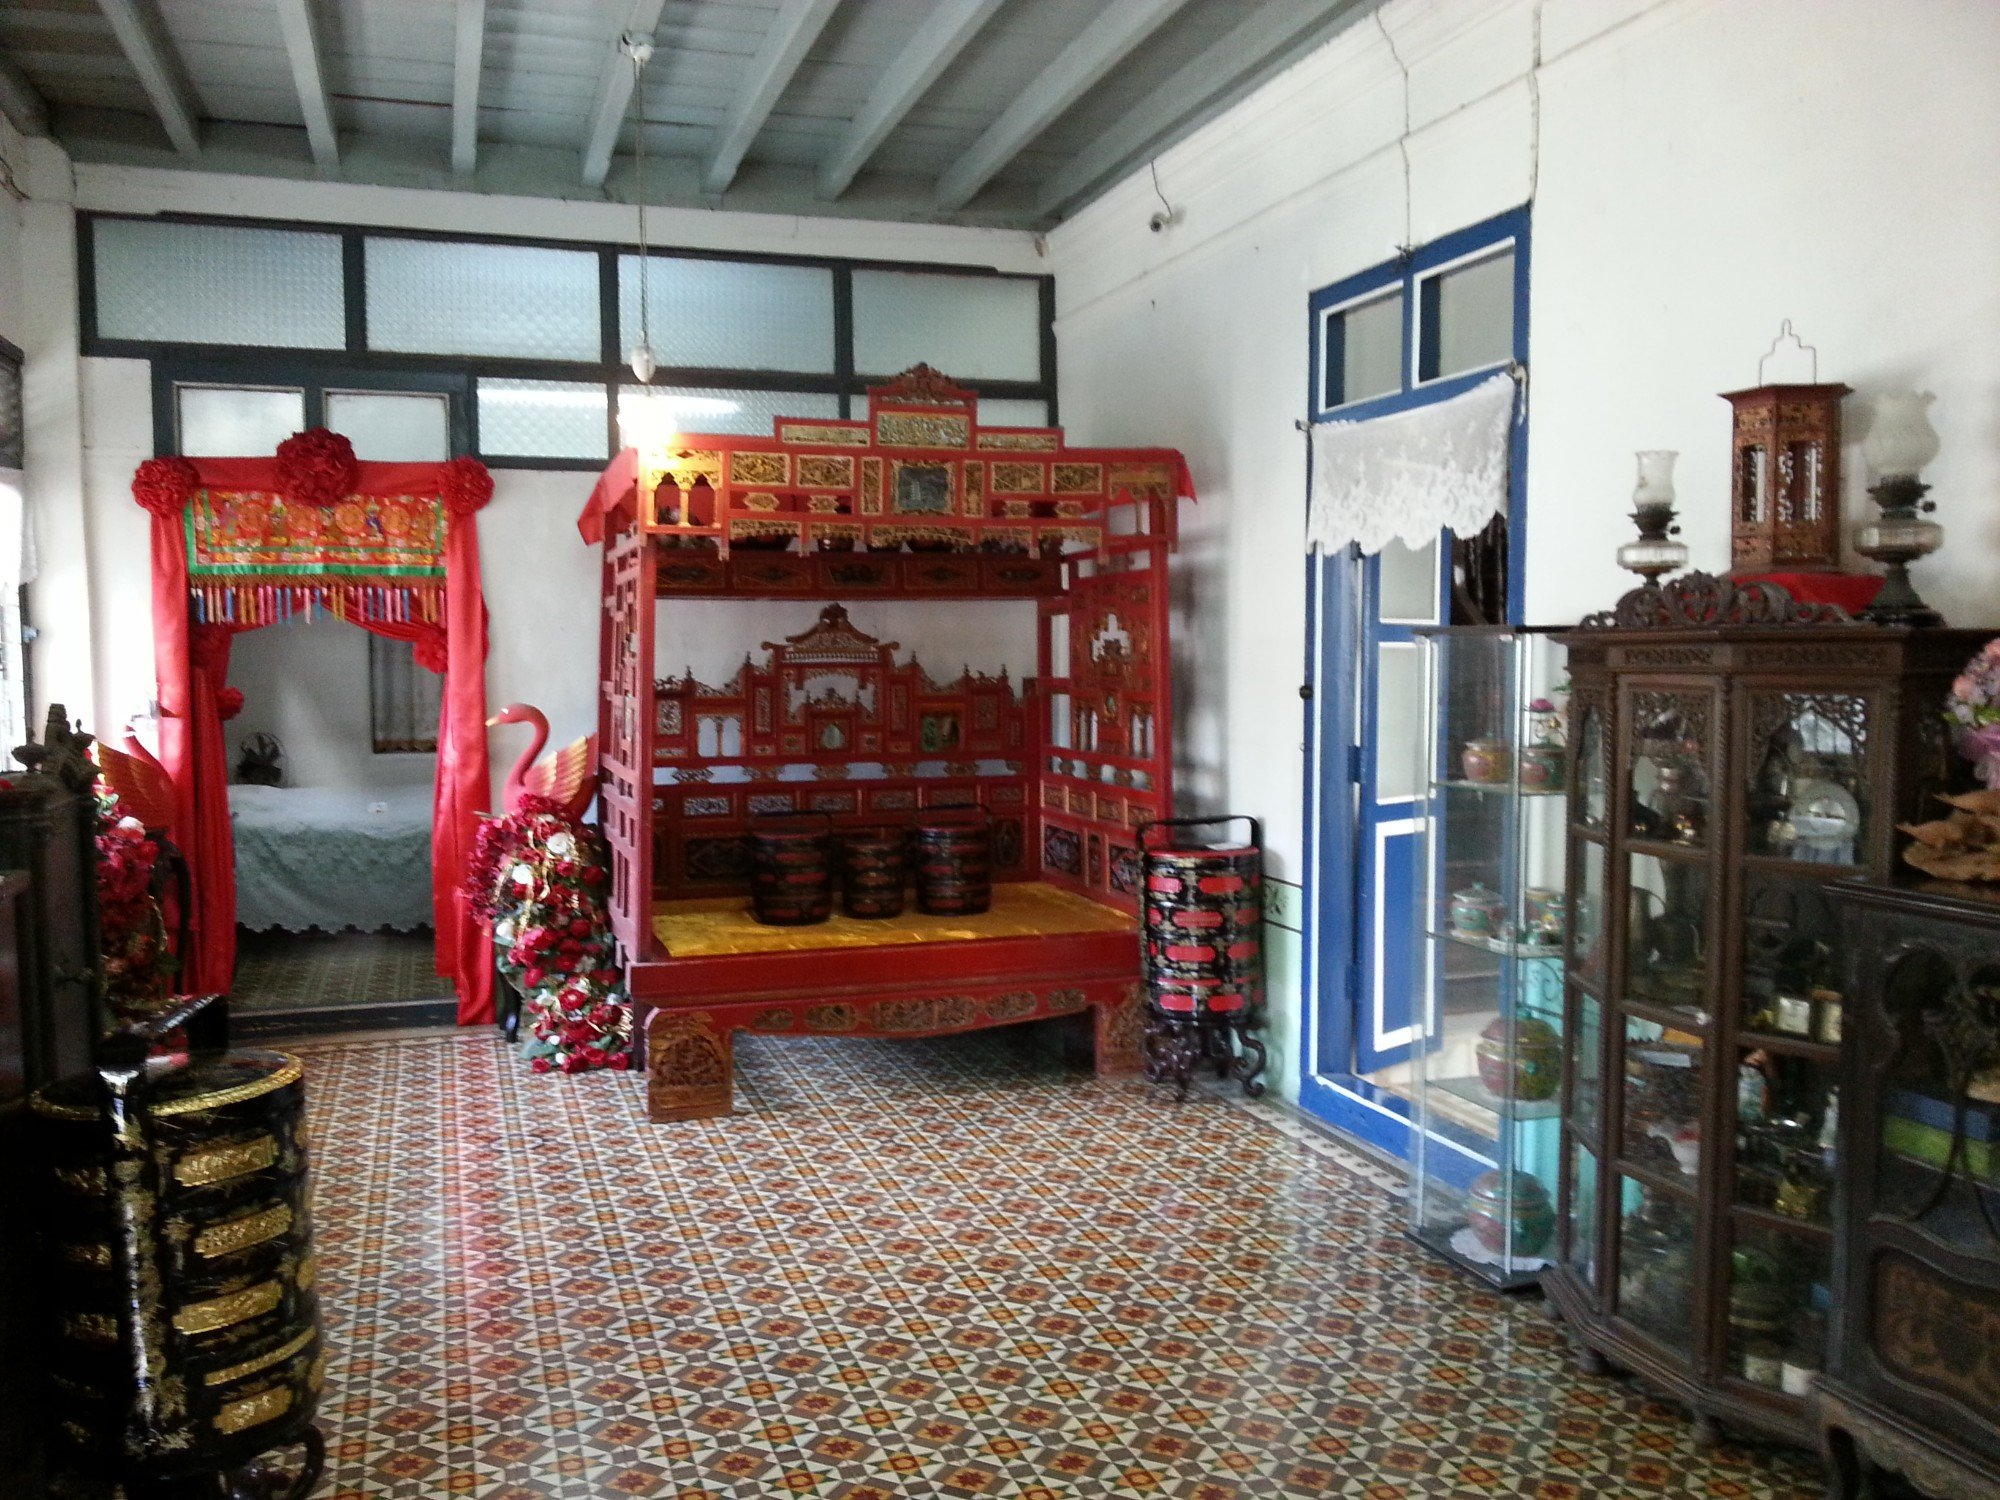 Bedroom in the Chinpracha House